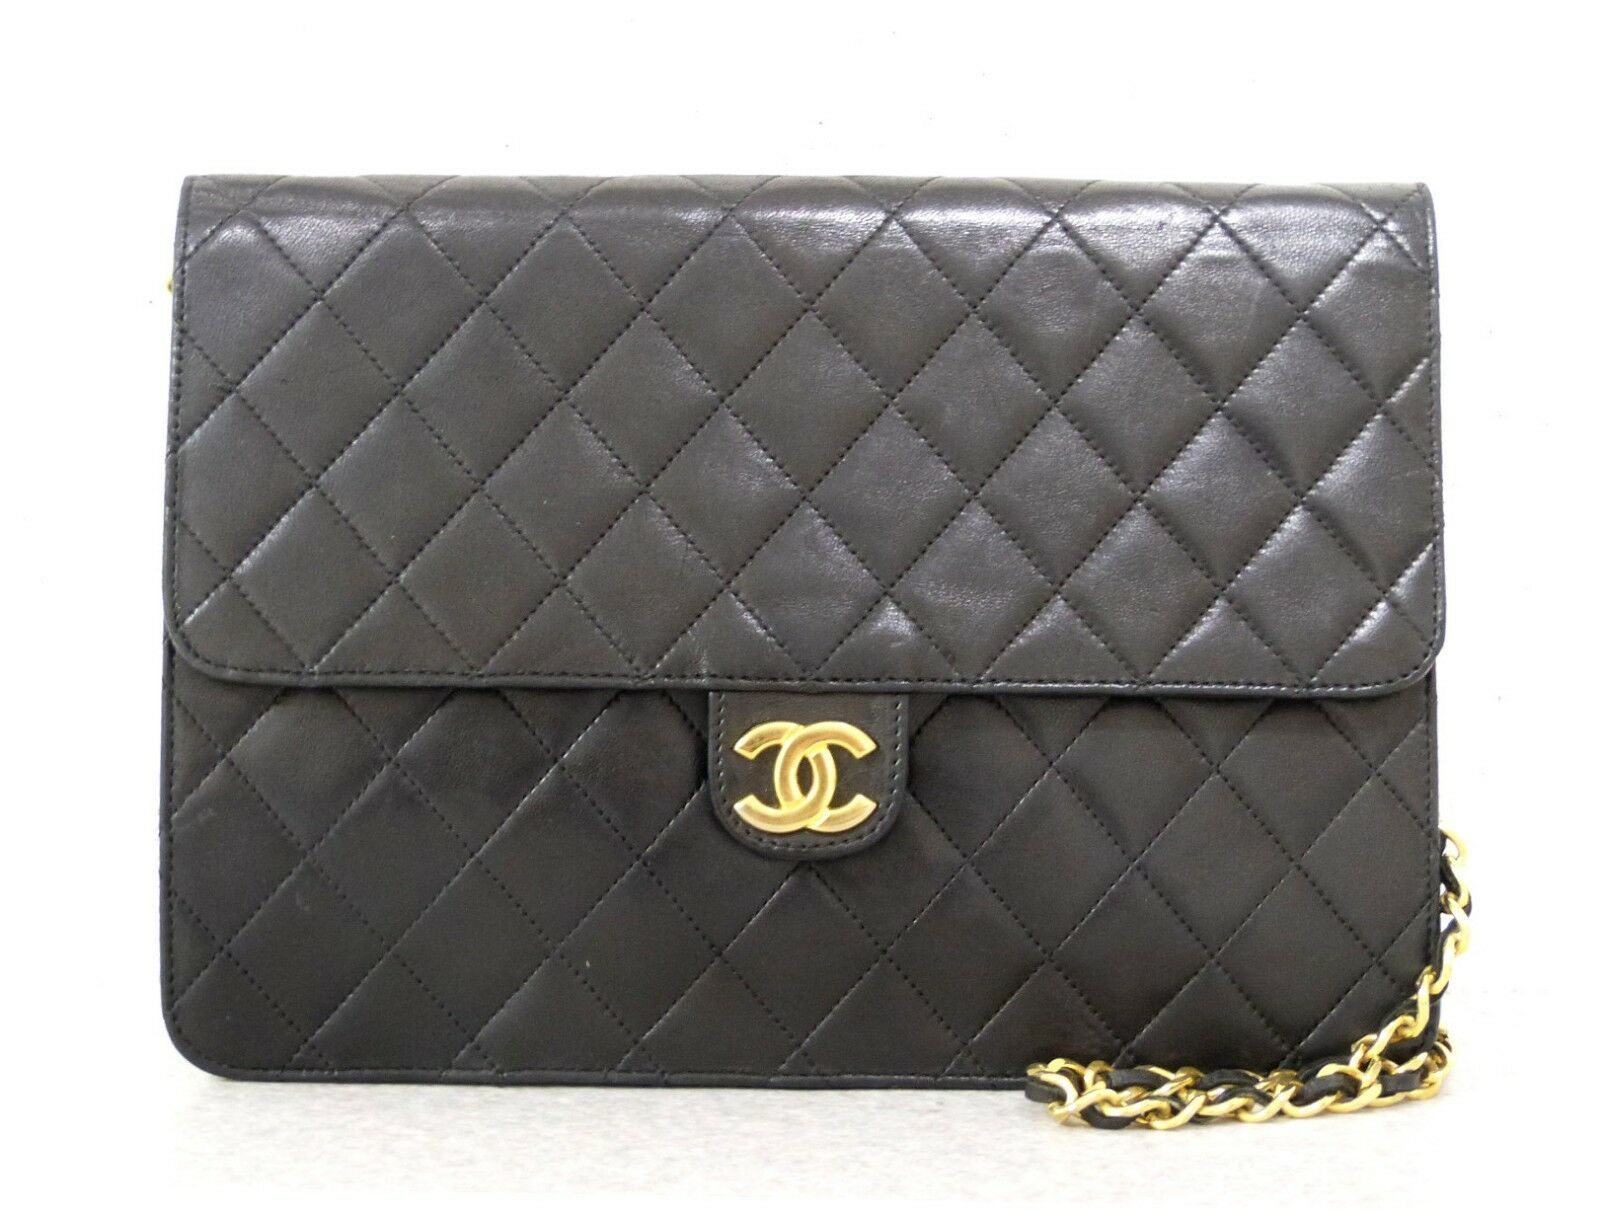 8a4cf7744fe8 #FORSALE rk5381 Auth CHANEL Black Quilted Lambskin Leather Push Lock Chain  Shoulder Bag - $355